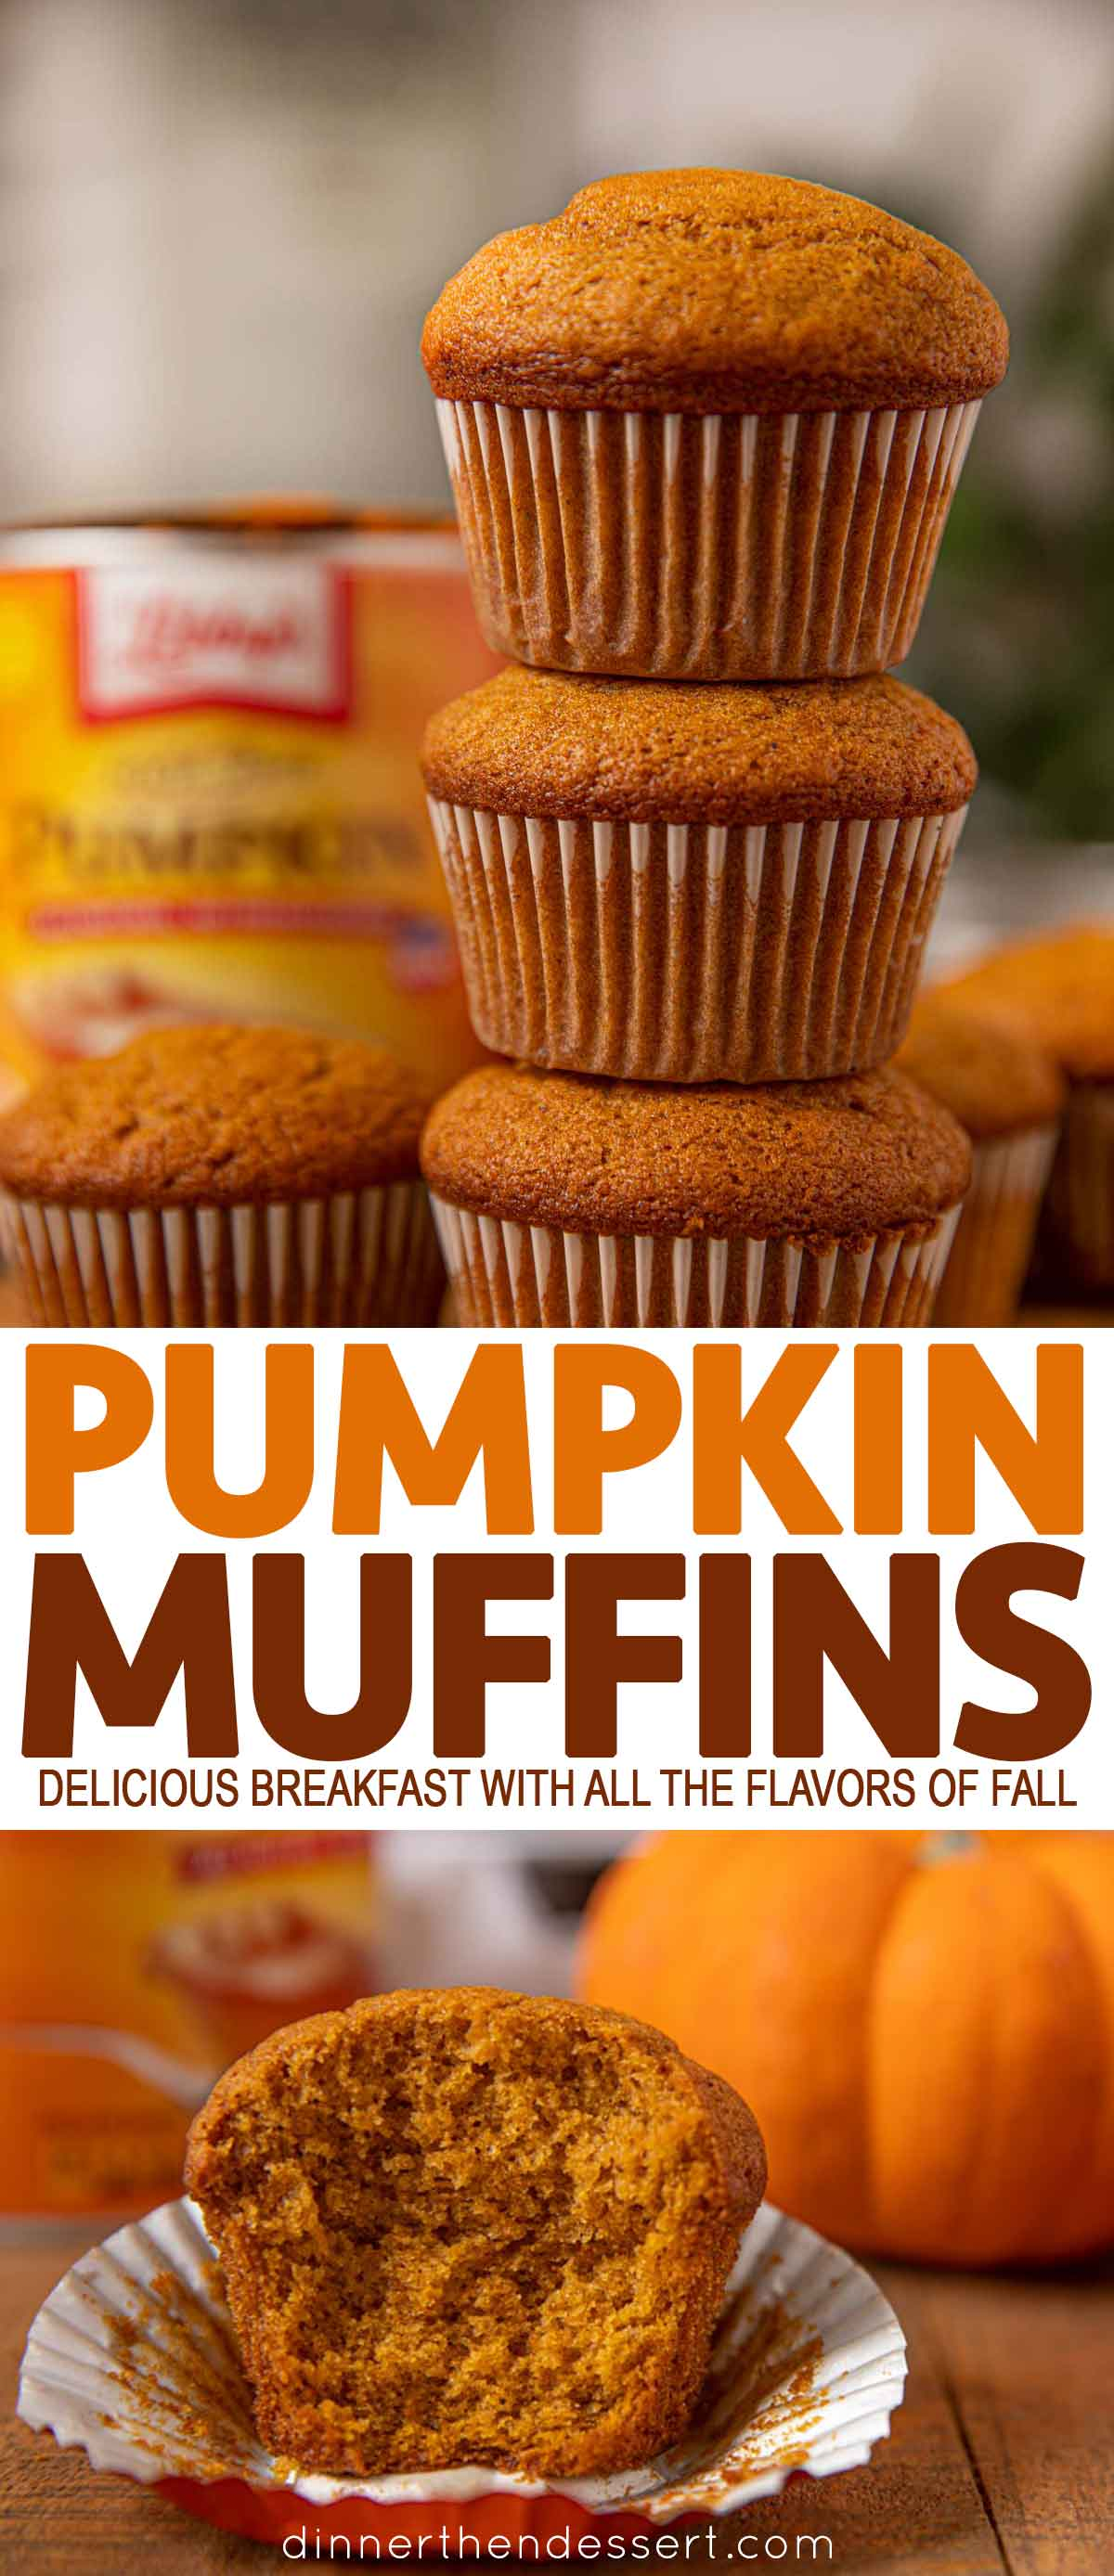 Collage of photos of pumpkin muffins